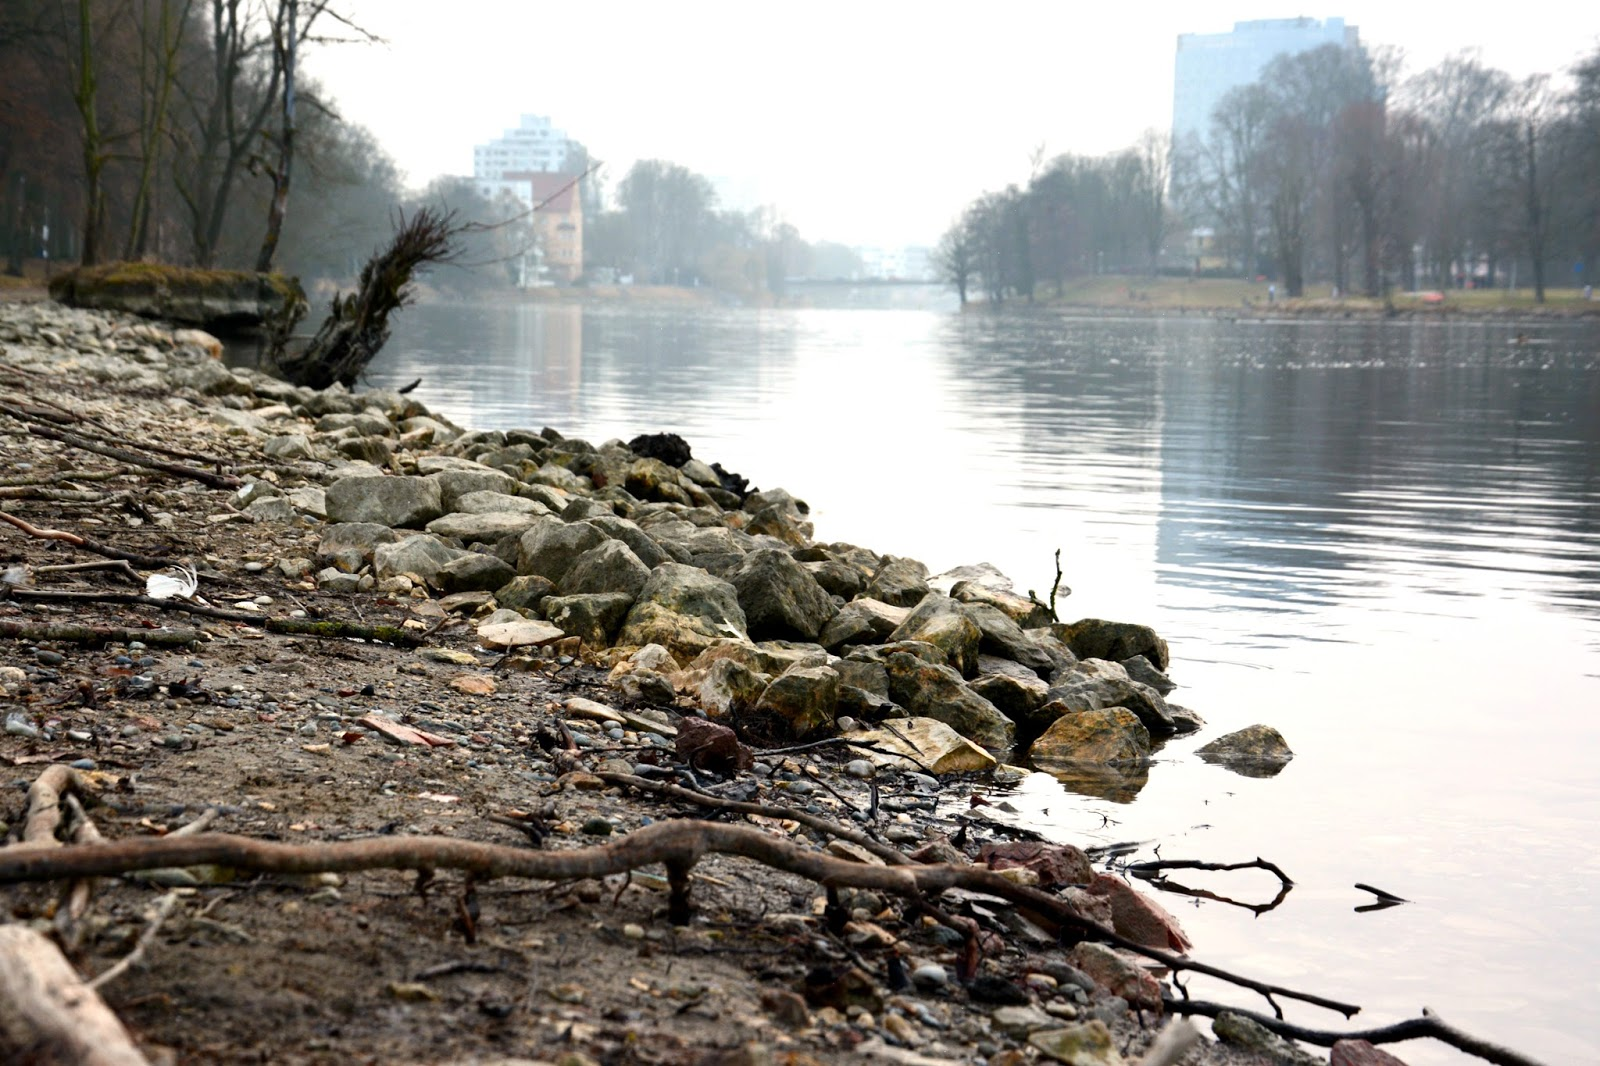 Riverside with stones, Donau, Ulm